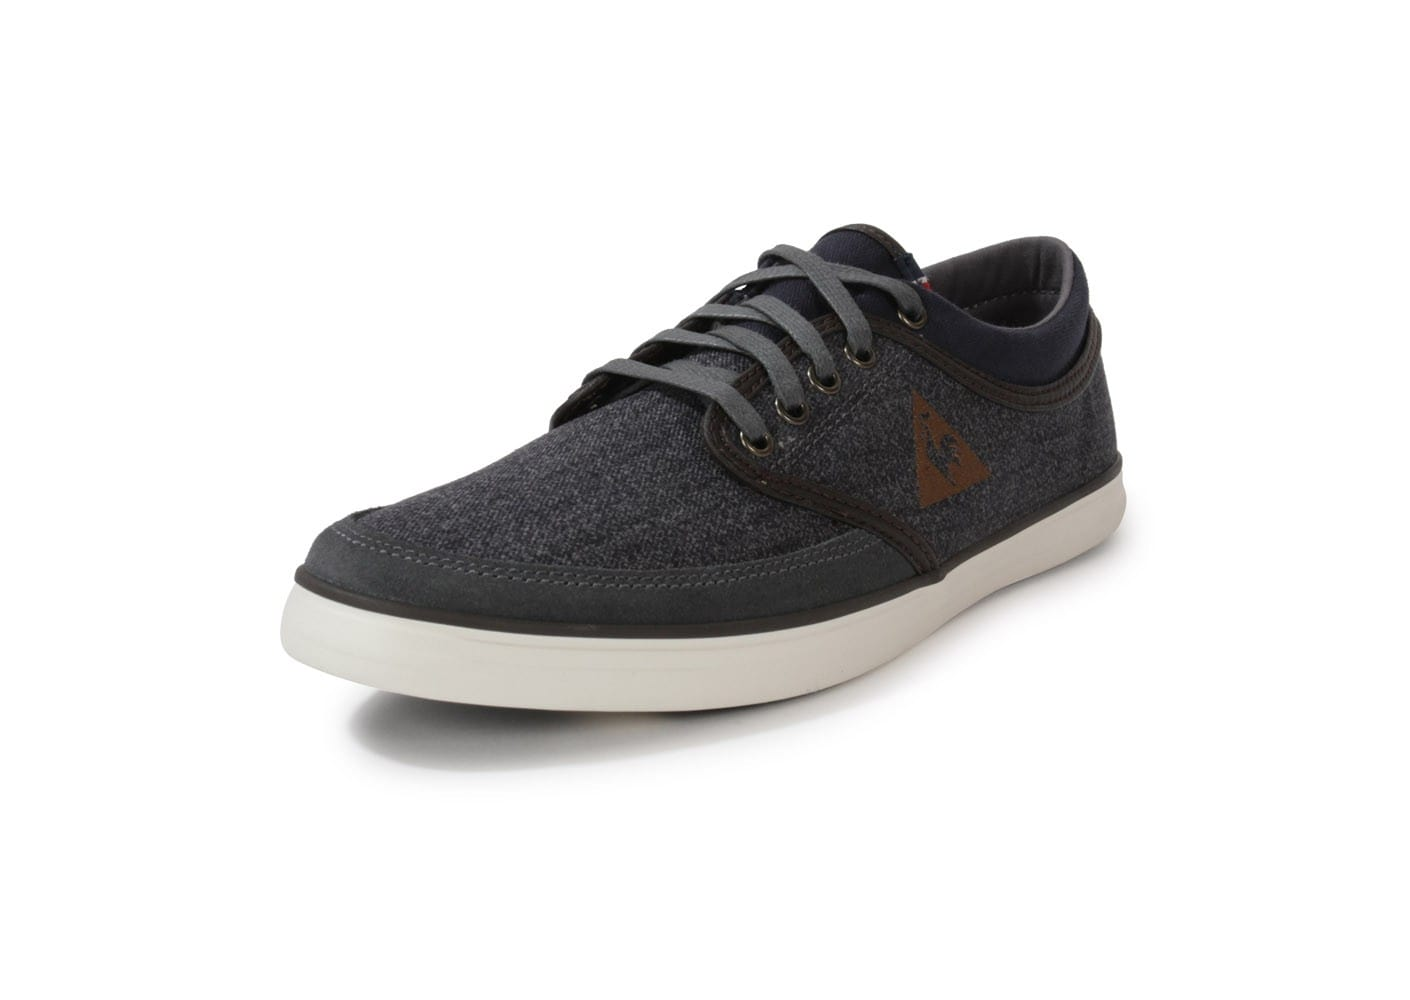 le coq sportif denfert toile charcoal chaussures homme chausport. Black Bedroom Furniture Sets. Home Design Ideas